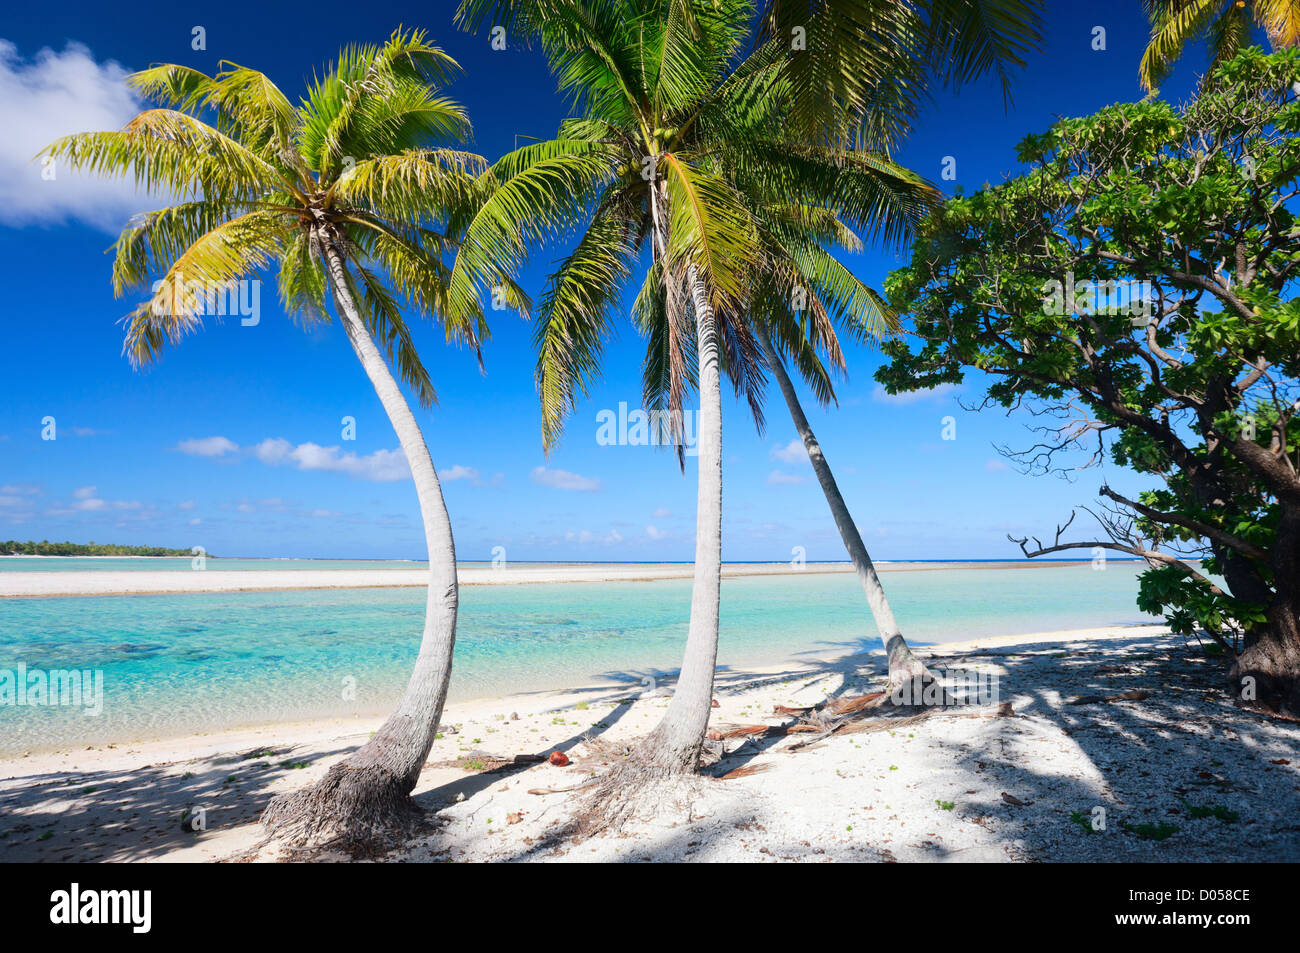 Perfect tropical beach - Stock Image